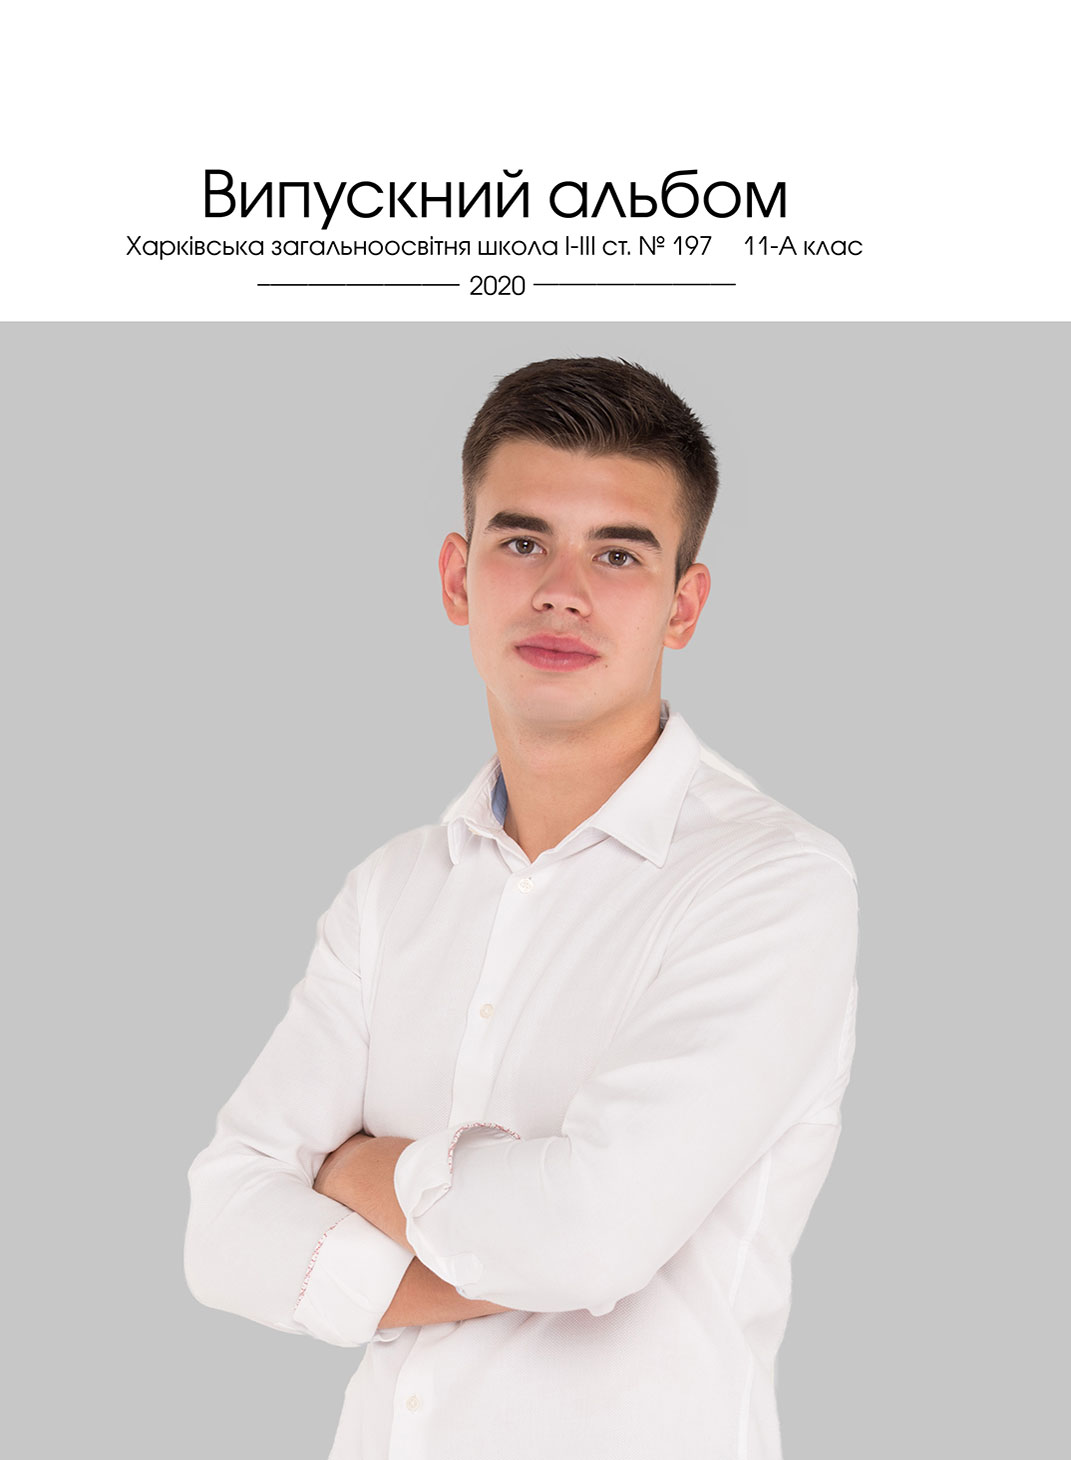 https://school-photo.com.ua/wp-content/uploads/2019/09/001l-copy.jpg